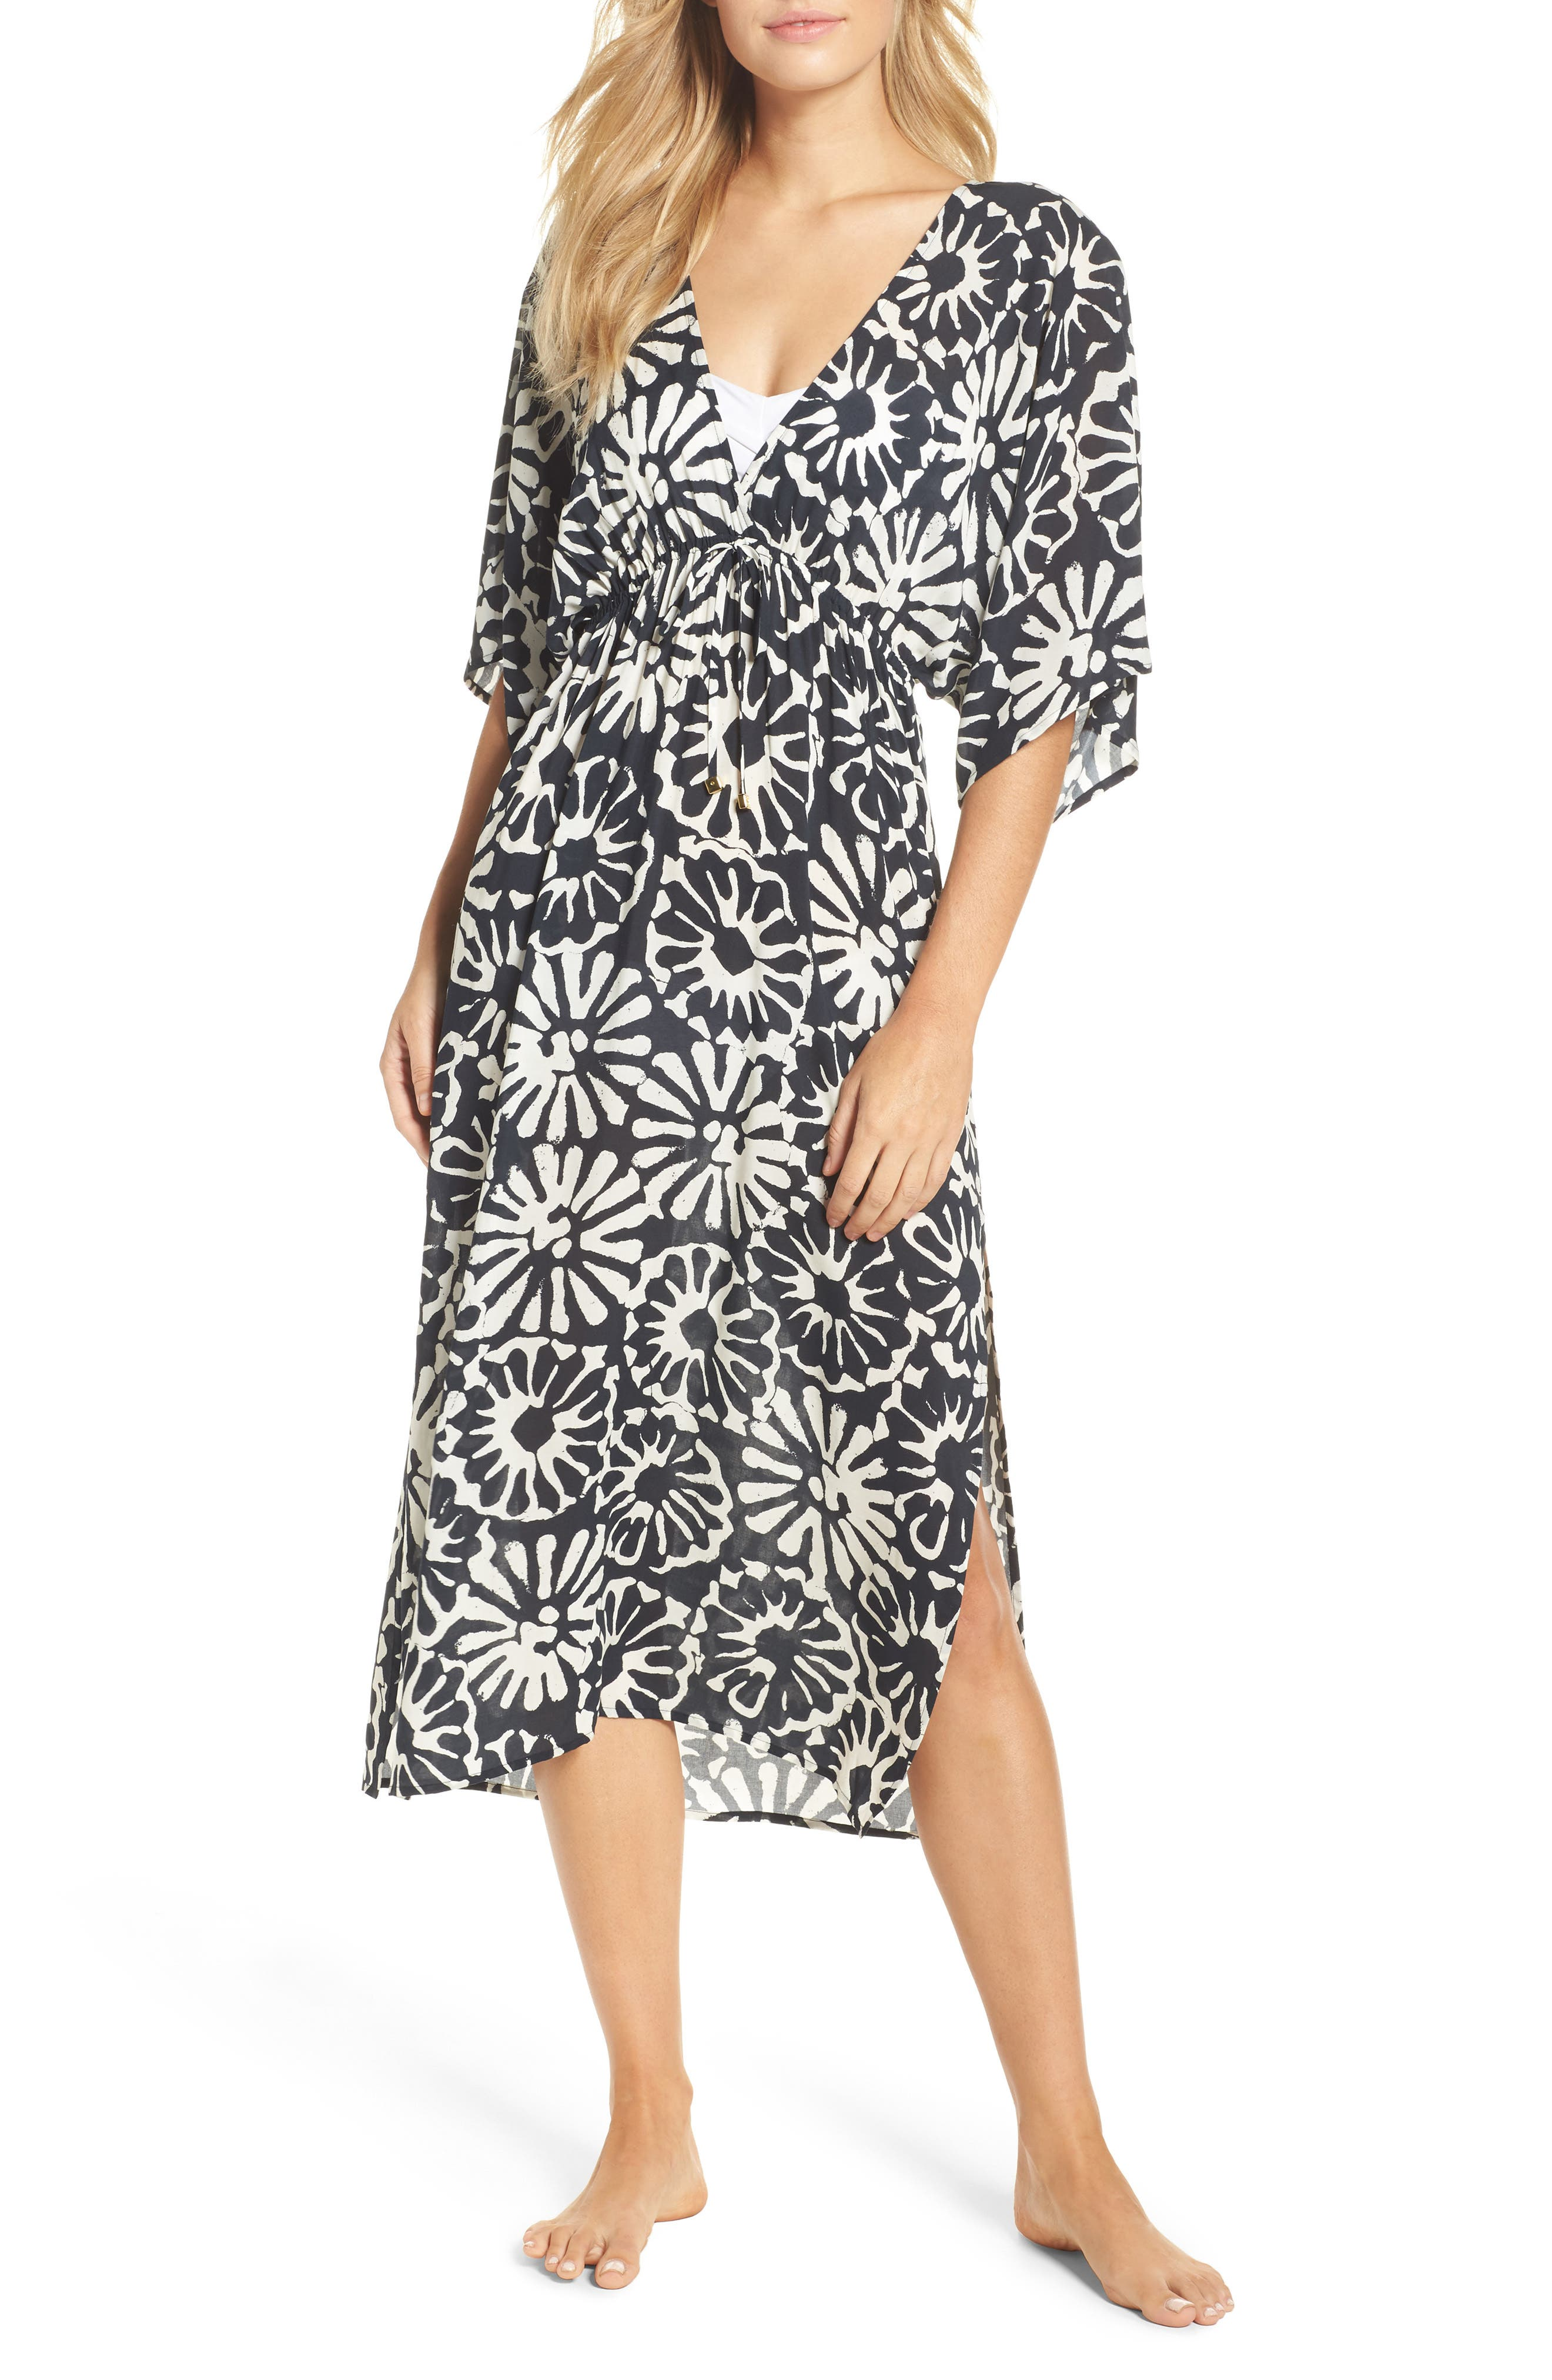 Alternate Image 1 Selected - Tory Burch Pomelo Floral Cover-Up Dress